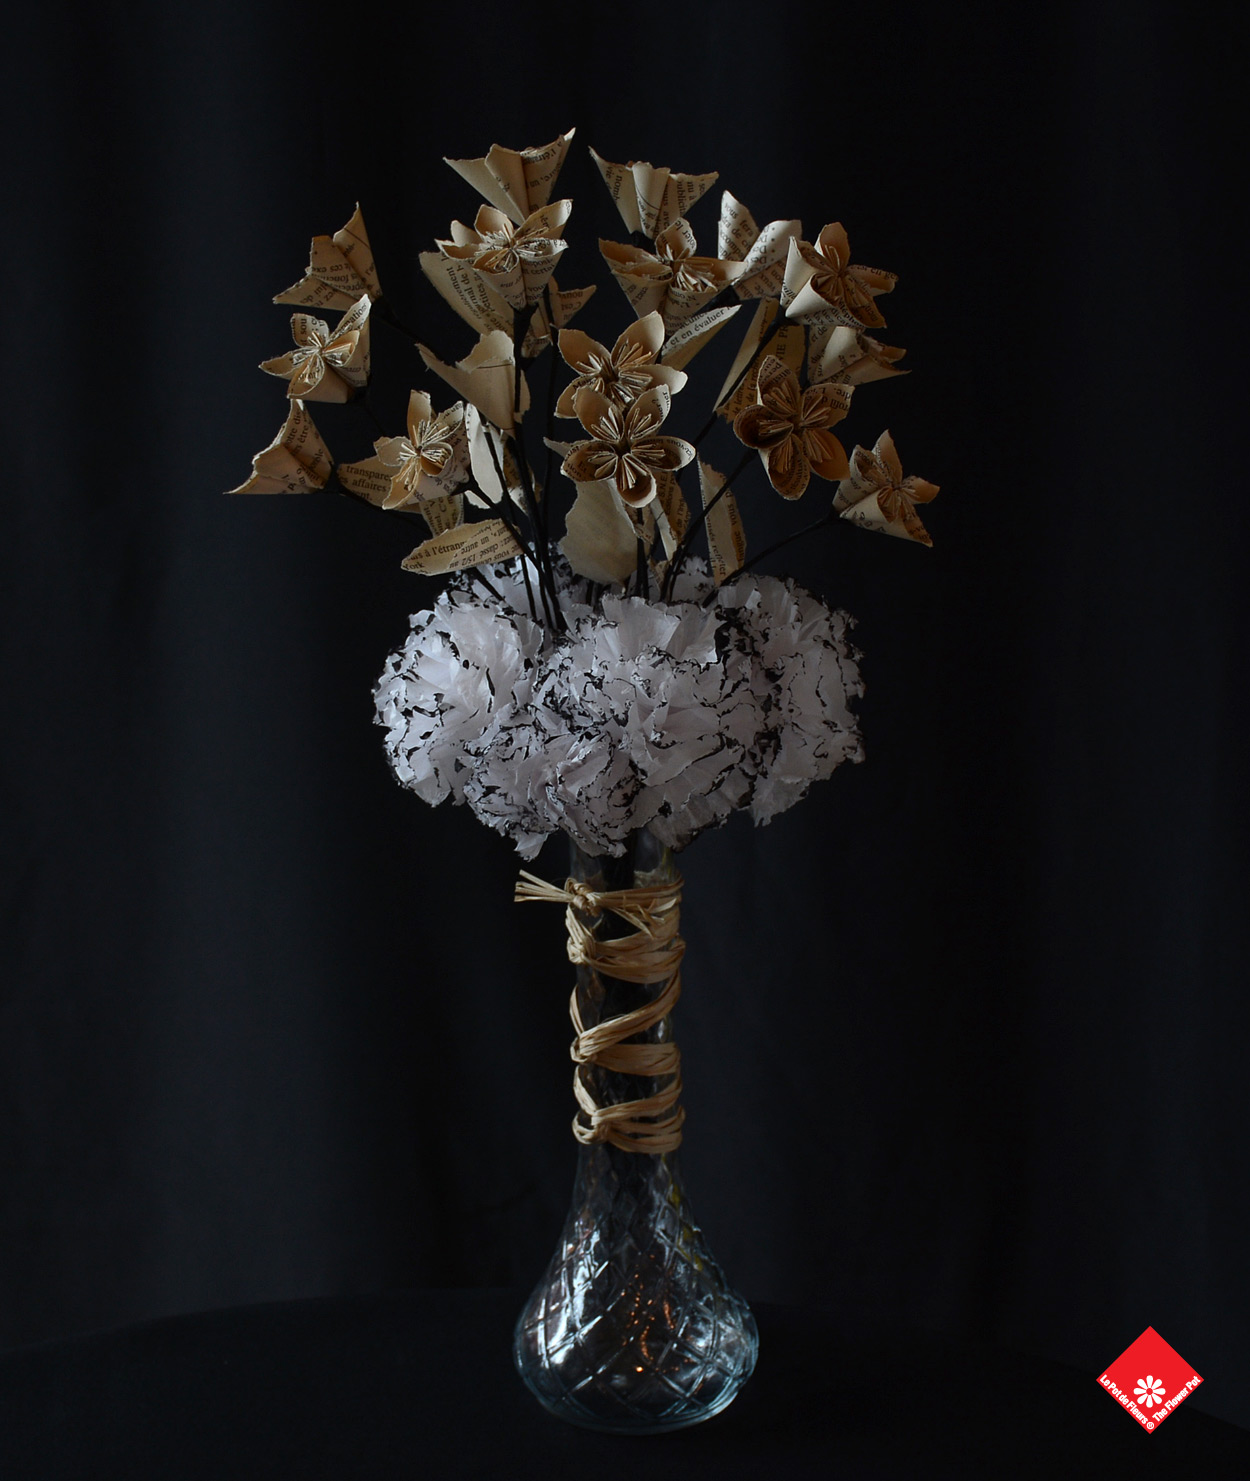 Our creative French florist created this wonderful paper flower arrangement made of newspapers and tissue paper.